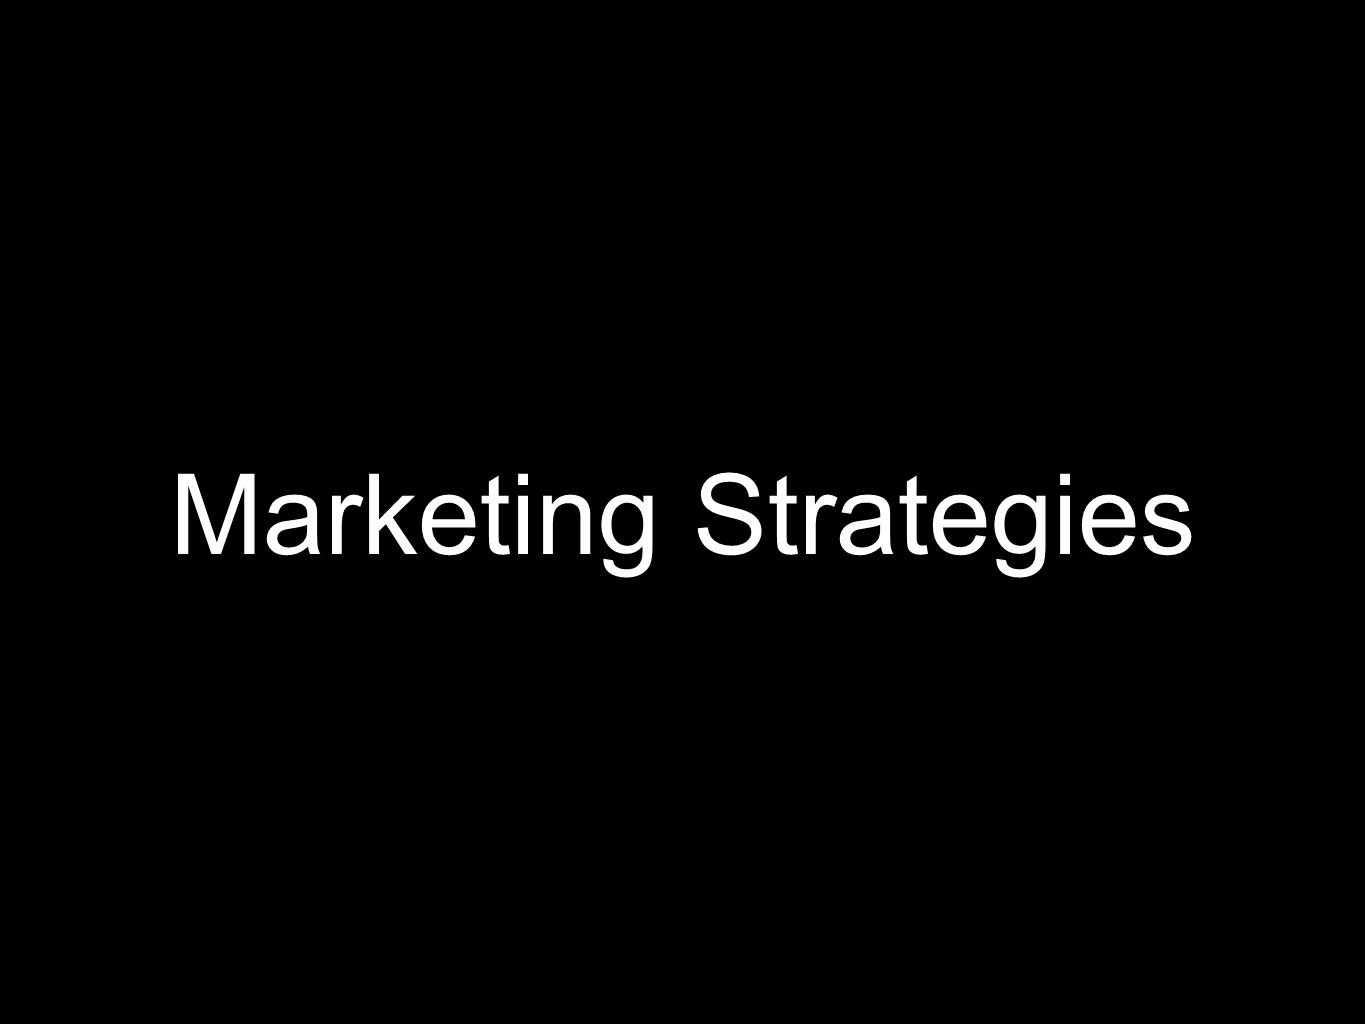 Strategy: Stretch Their Dollars Find more ideas at Webjunction.